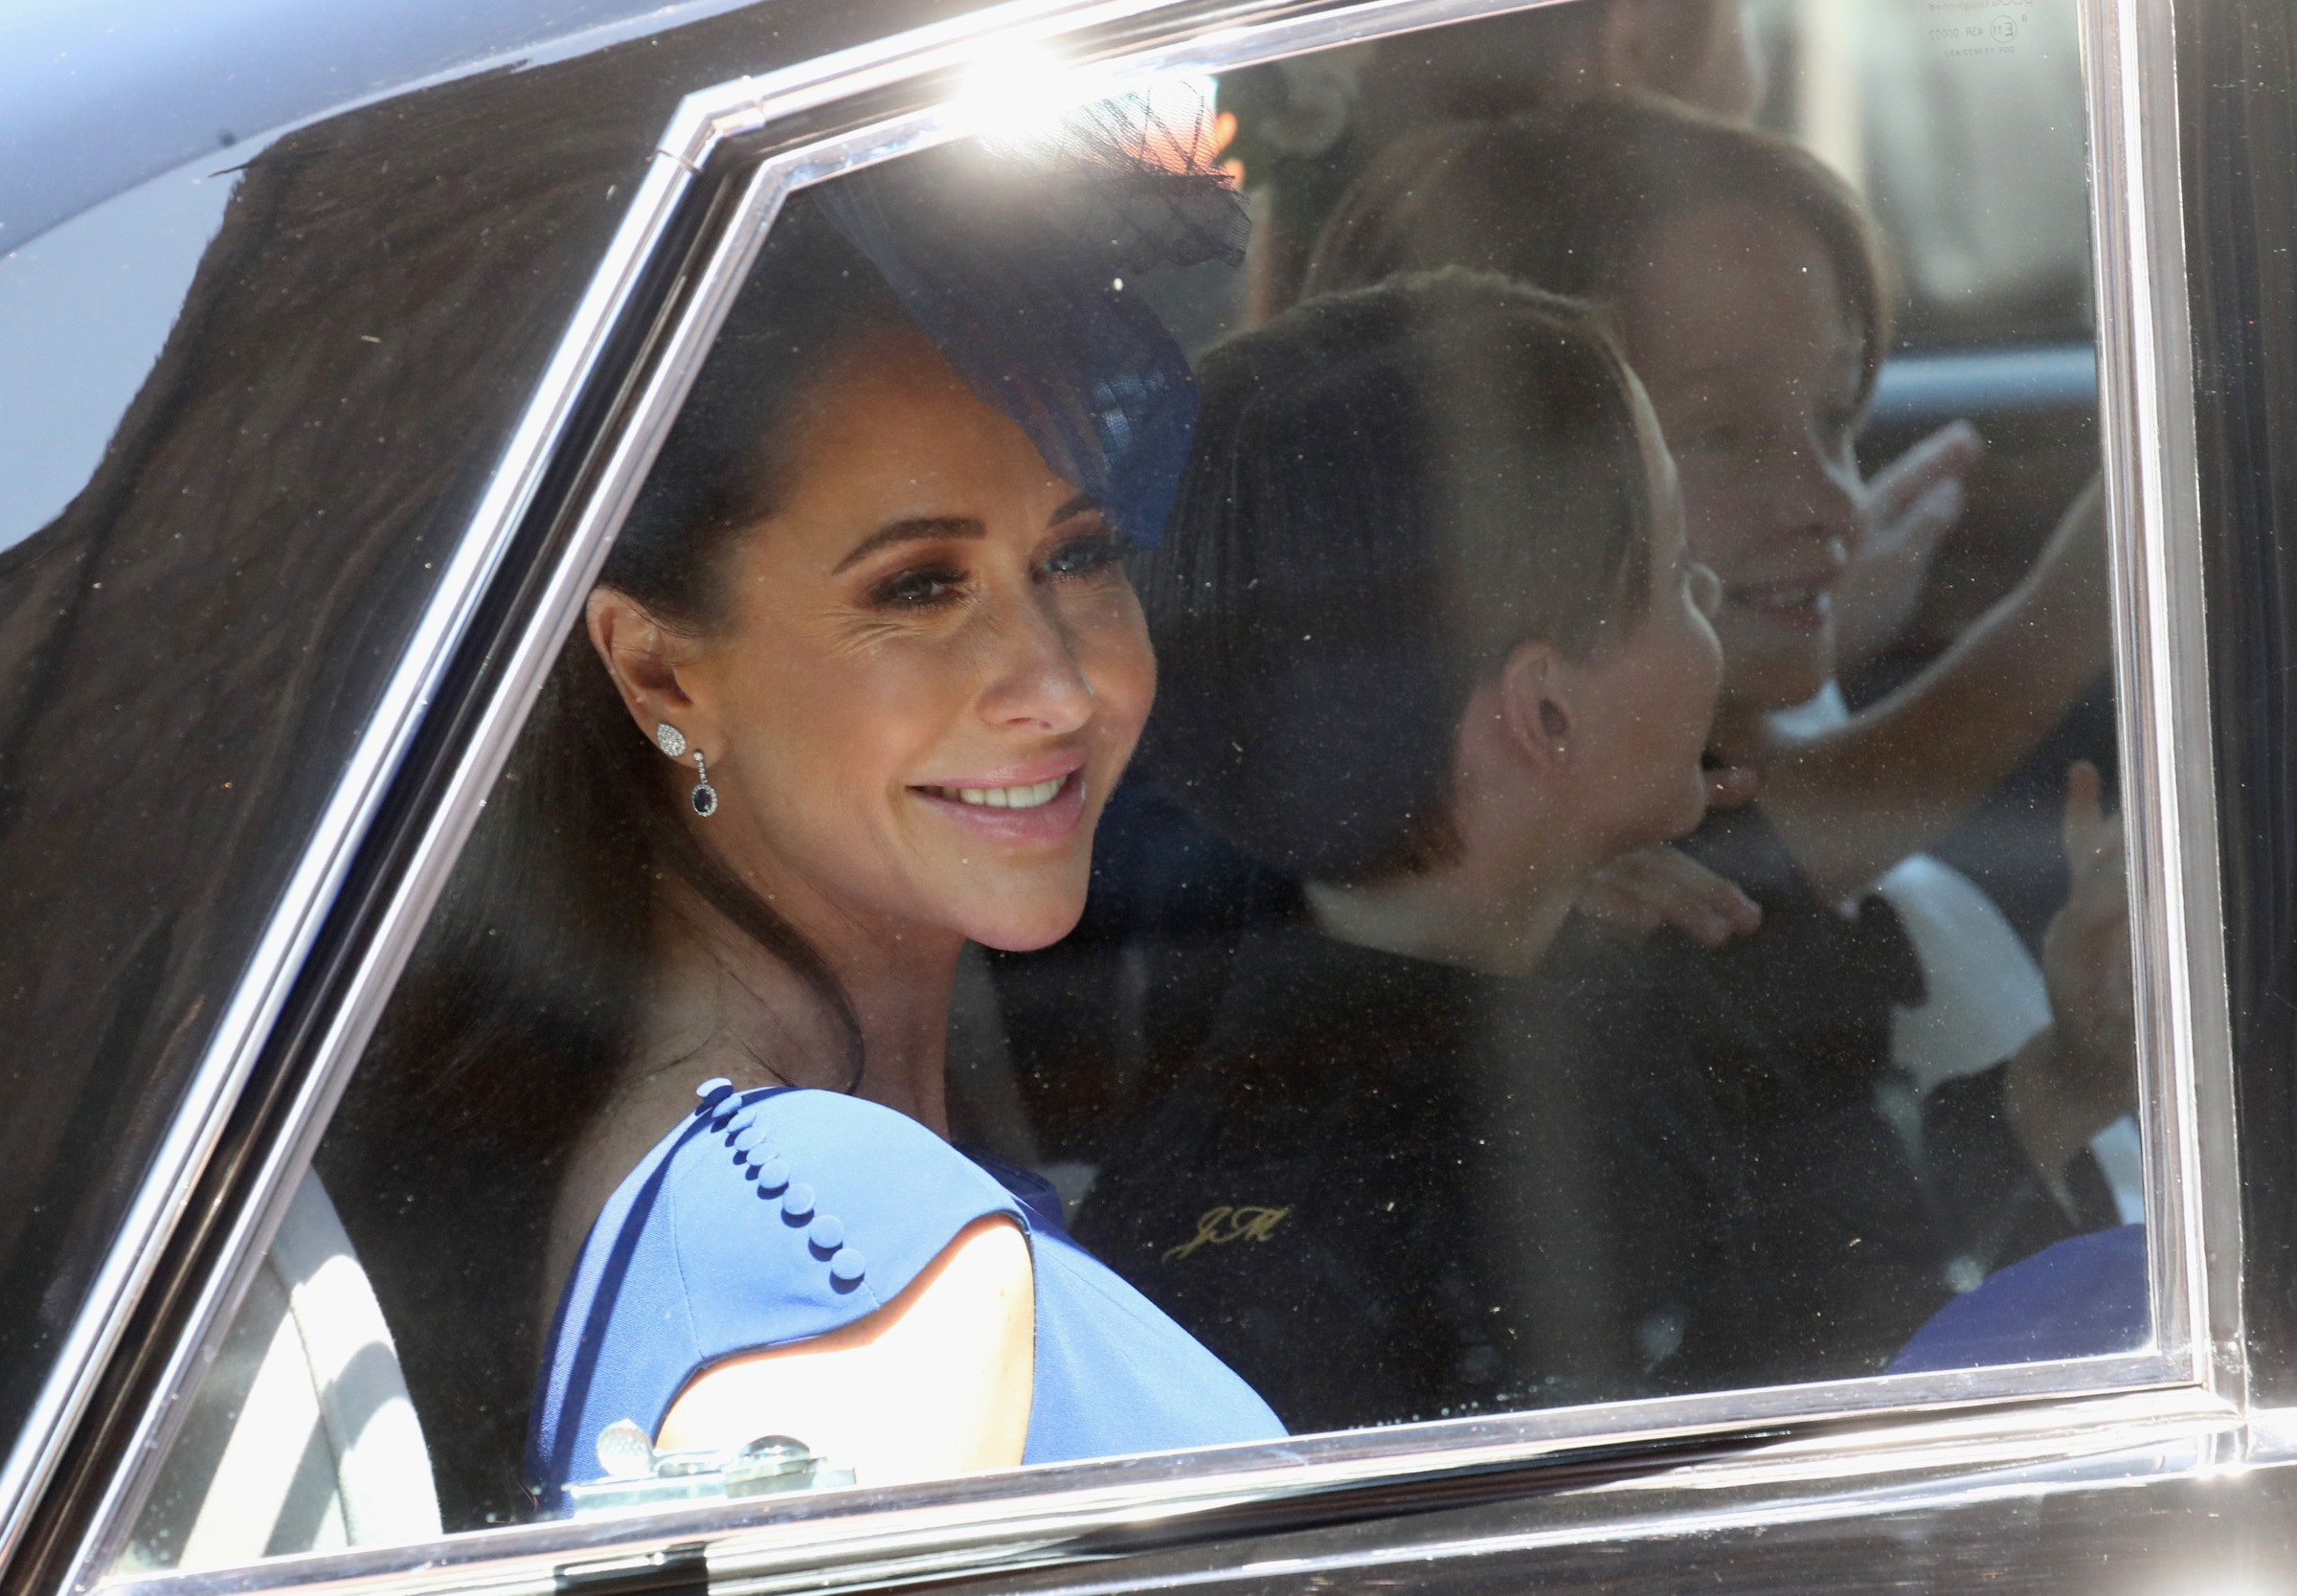 WINDSOR, ENGLAND - MAY 19: Canadian Fashion Stylist Jessica Mulroney arrives at the wedding of Prince Harry to Ms Meghan Markle at St George's Chapel, Windsor Castle on May 19, 2018 in Windsor, England. Prince Henry Charles Albert David of Wales marries Ms. Meghan Markle in a service at St George's Chapel inside the grounds of Windsor Castle. Among the guests were 2200 members of the public, the royal family and Ms. Markle's Mother Doria Ragland.,Image: 372287507, License: Rights-managed, Restrictions: NO UK USE  FOR SEVEN DAYS - Fee Payable Upon Reproduction - For queries contact Avalon.red - sales@avalon.red London: +44 (0) 20 7421 6000 Los Angeles: +1 (310) 822 0419 Berlin: +49 (0) 30 76 212 251 Madrid: +34 91 533 4289, Model Release: no, Credit line: Avalon.red / Avalon Editorial / Profimedia